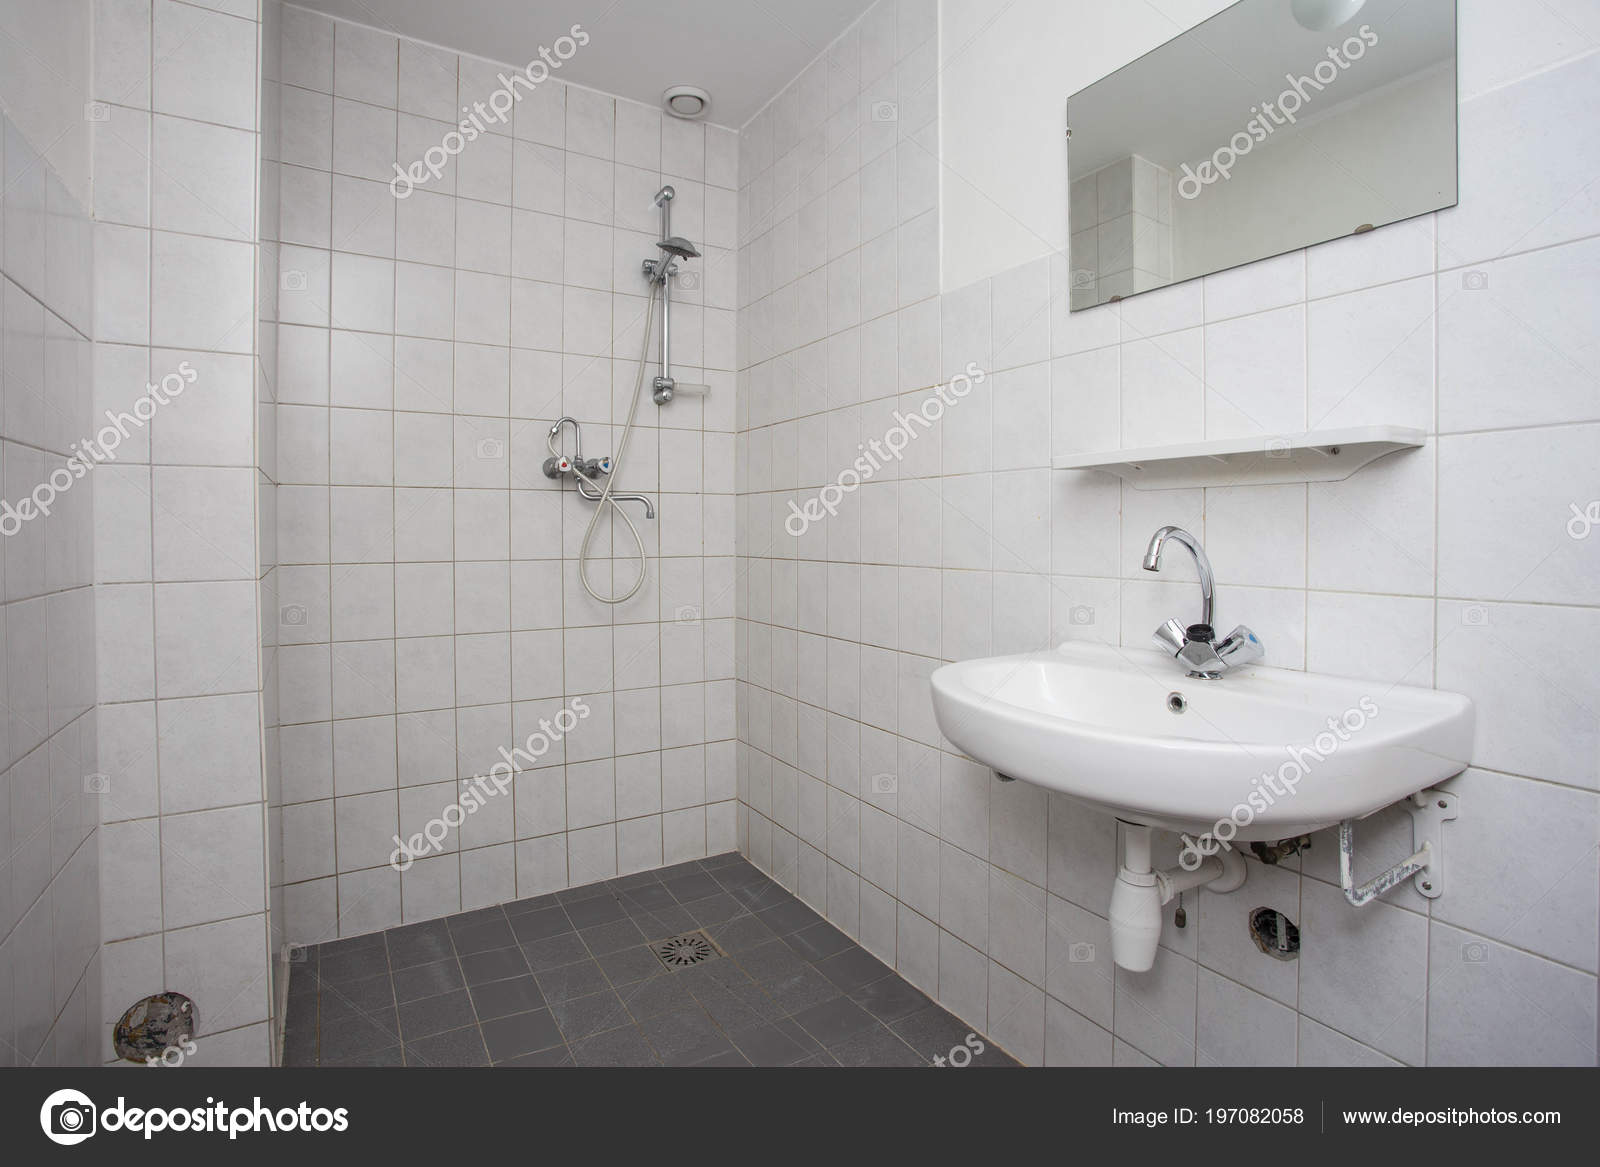 Simple, old clean bathroom with white tiled floor sink and shower ...